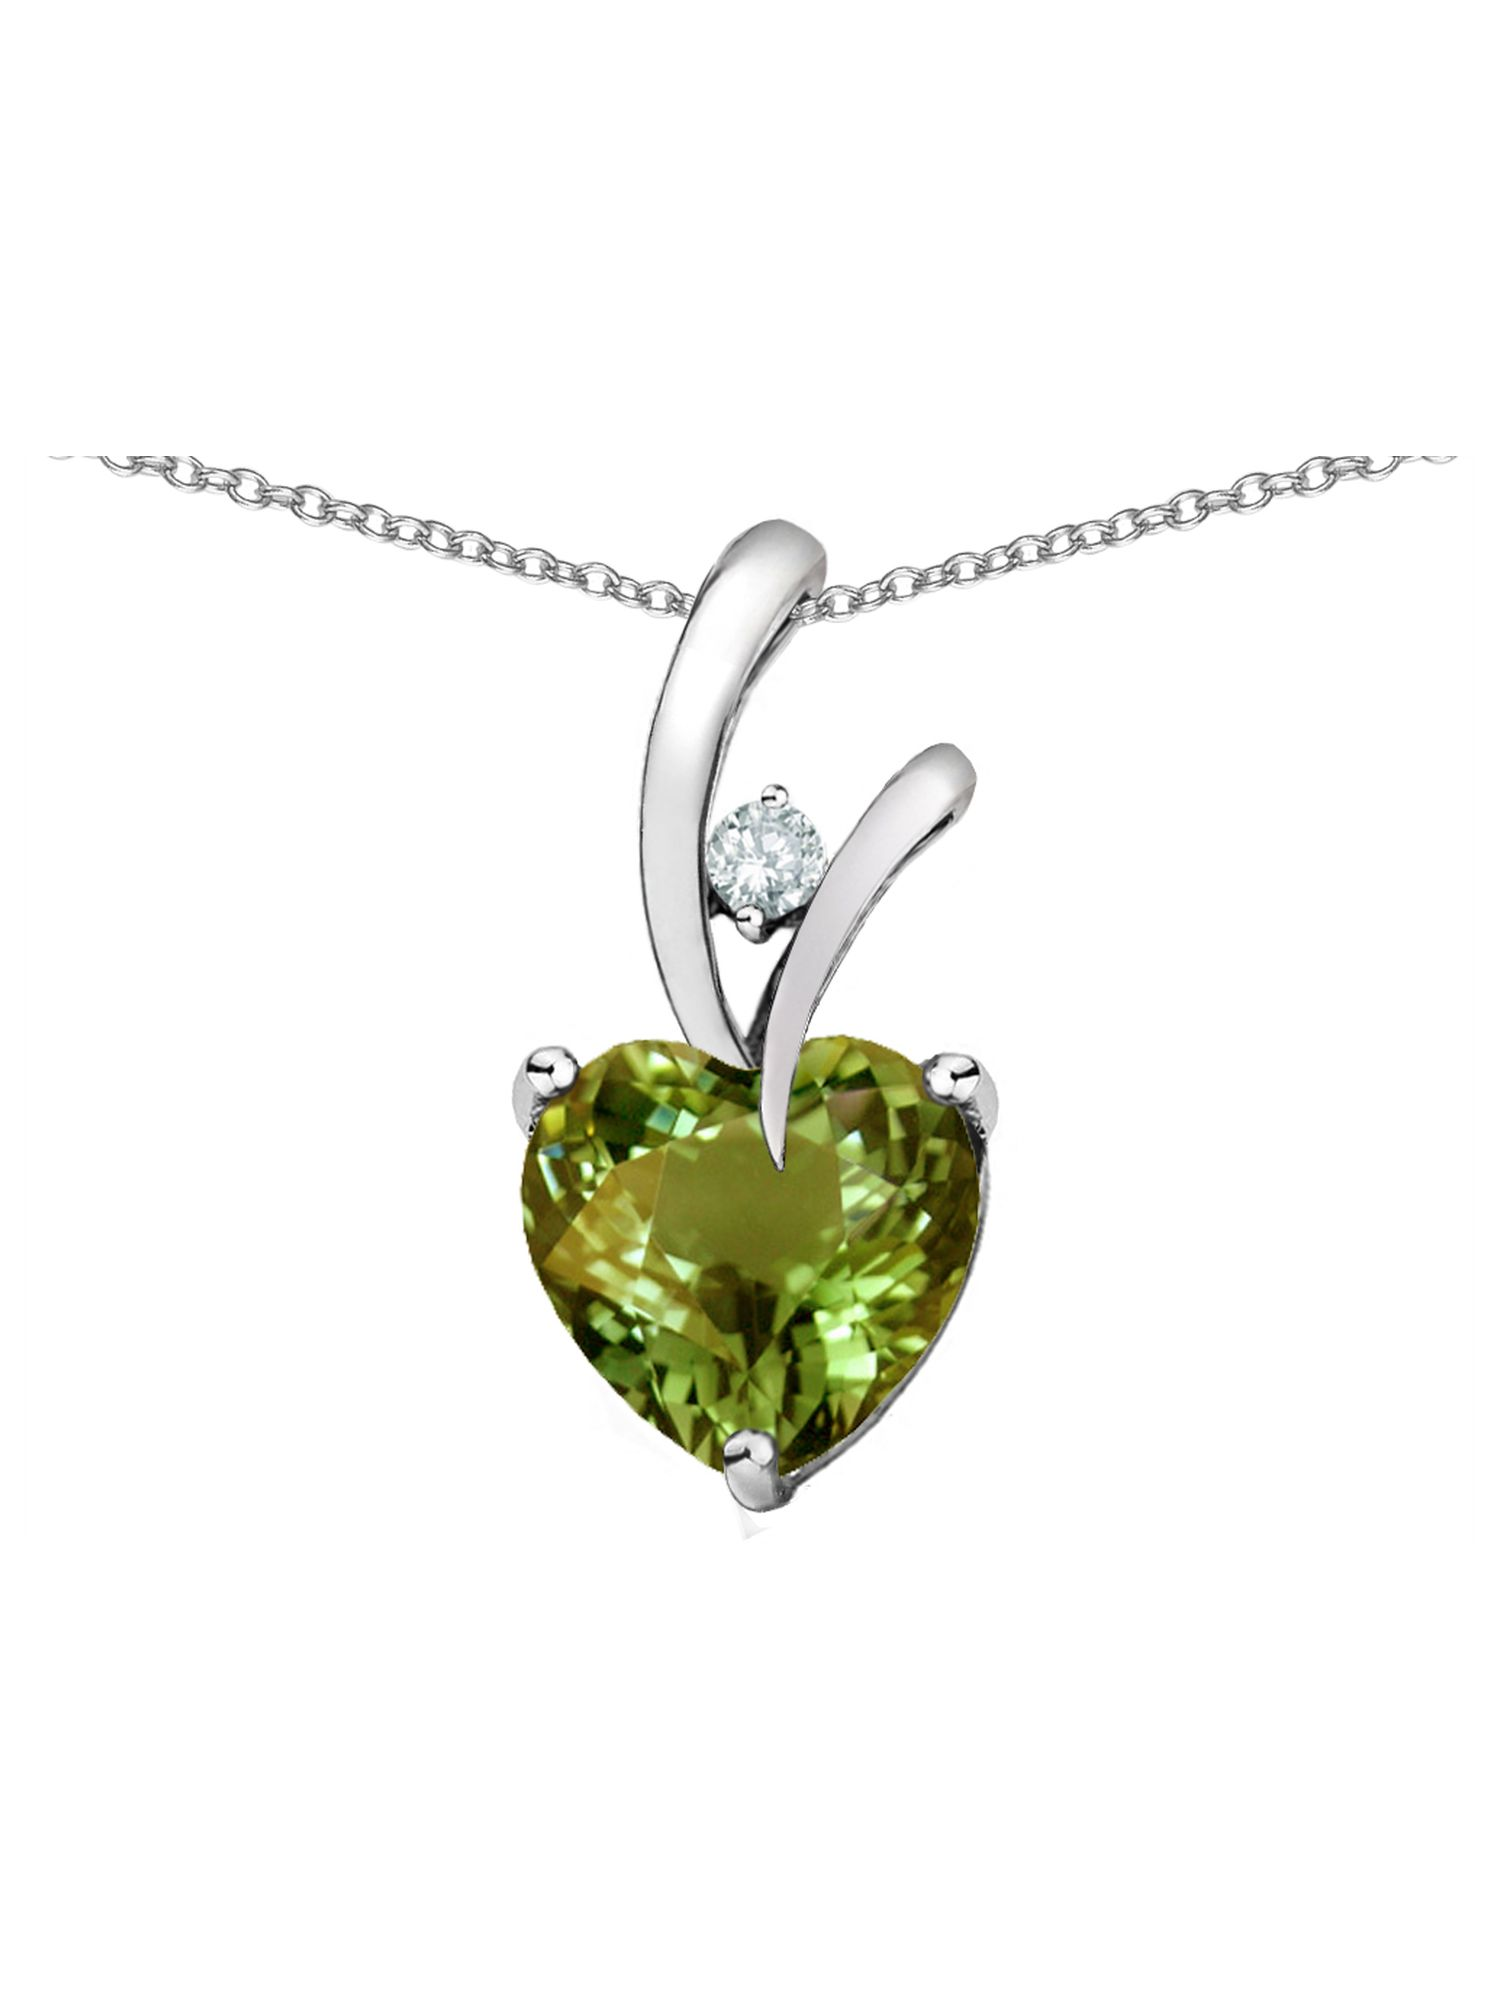 Star K Heart Shape 8mm Simulated Green Tourmaline Endless Love Pendant Necklace in Sterling Silver by Star K